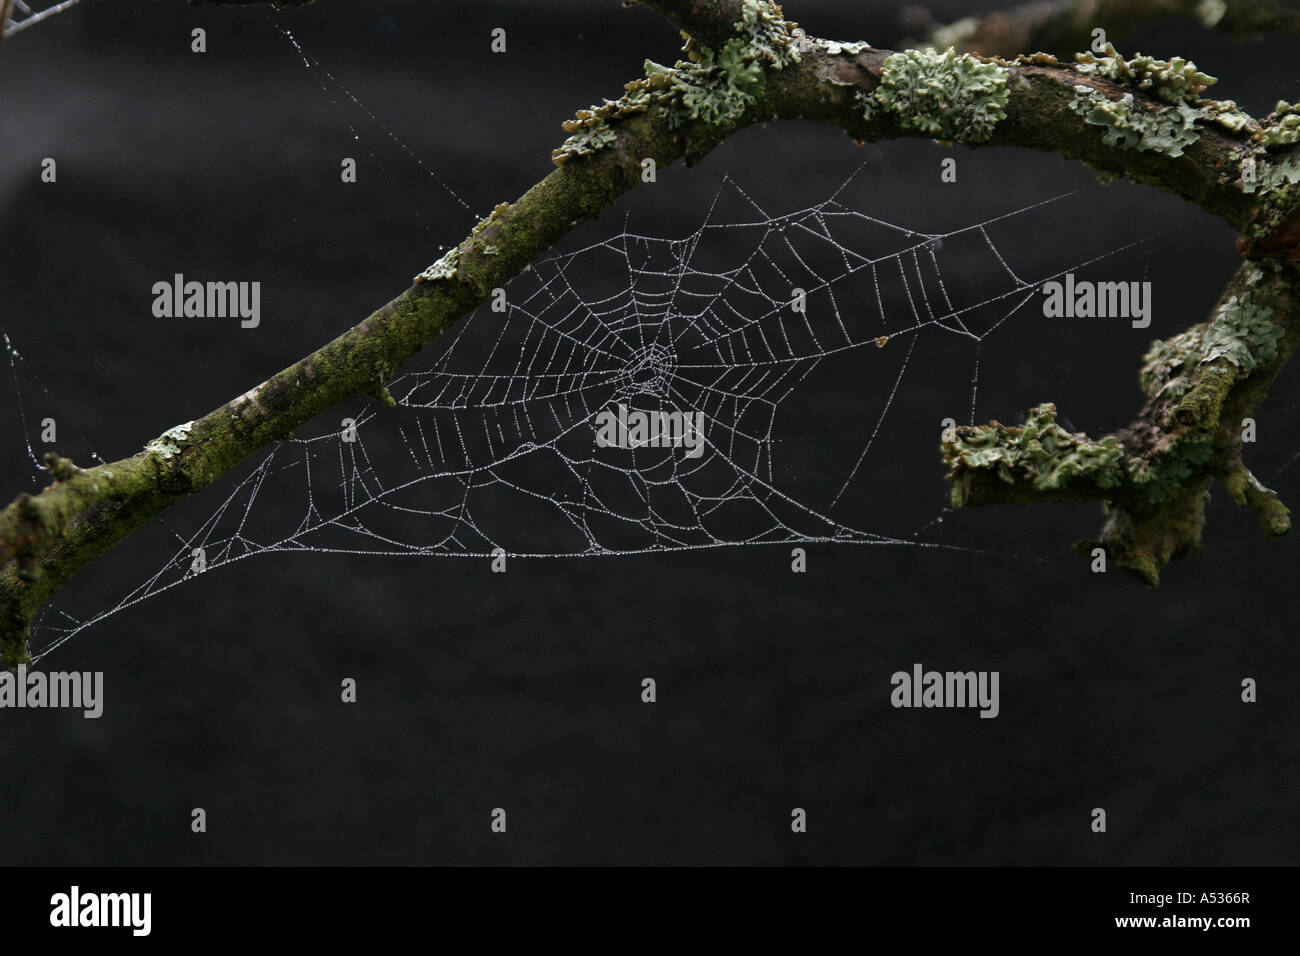 Dew on a spiders web - Stock Image